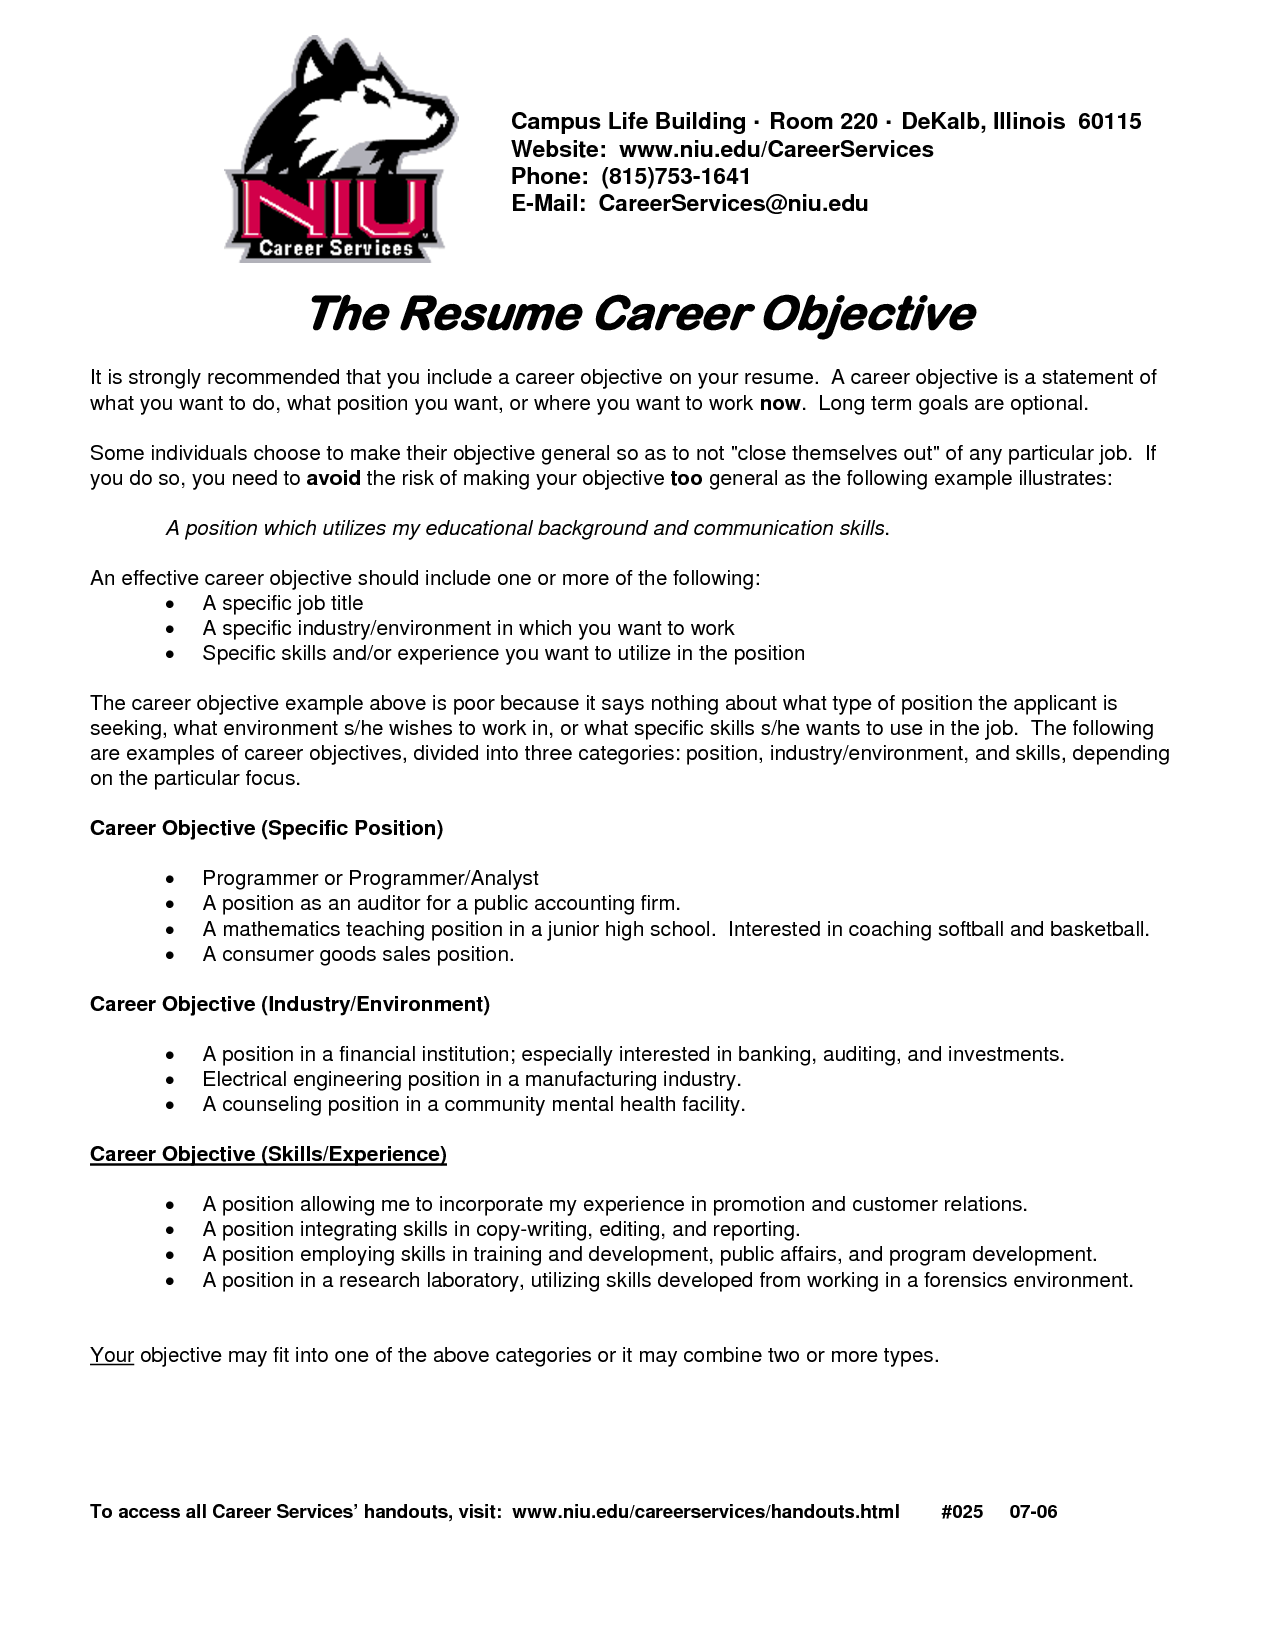 How to Write a Career Objective On A Resume - SampleBusinessResume ...